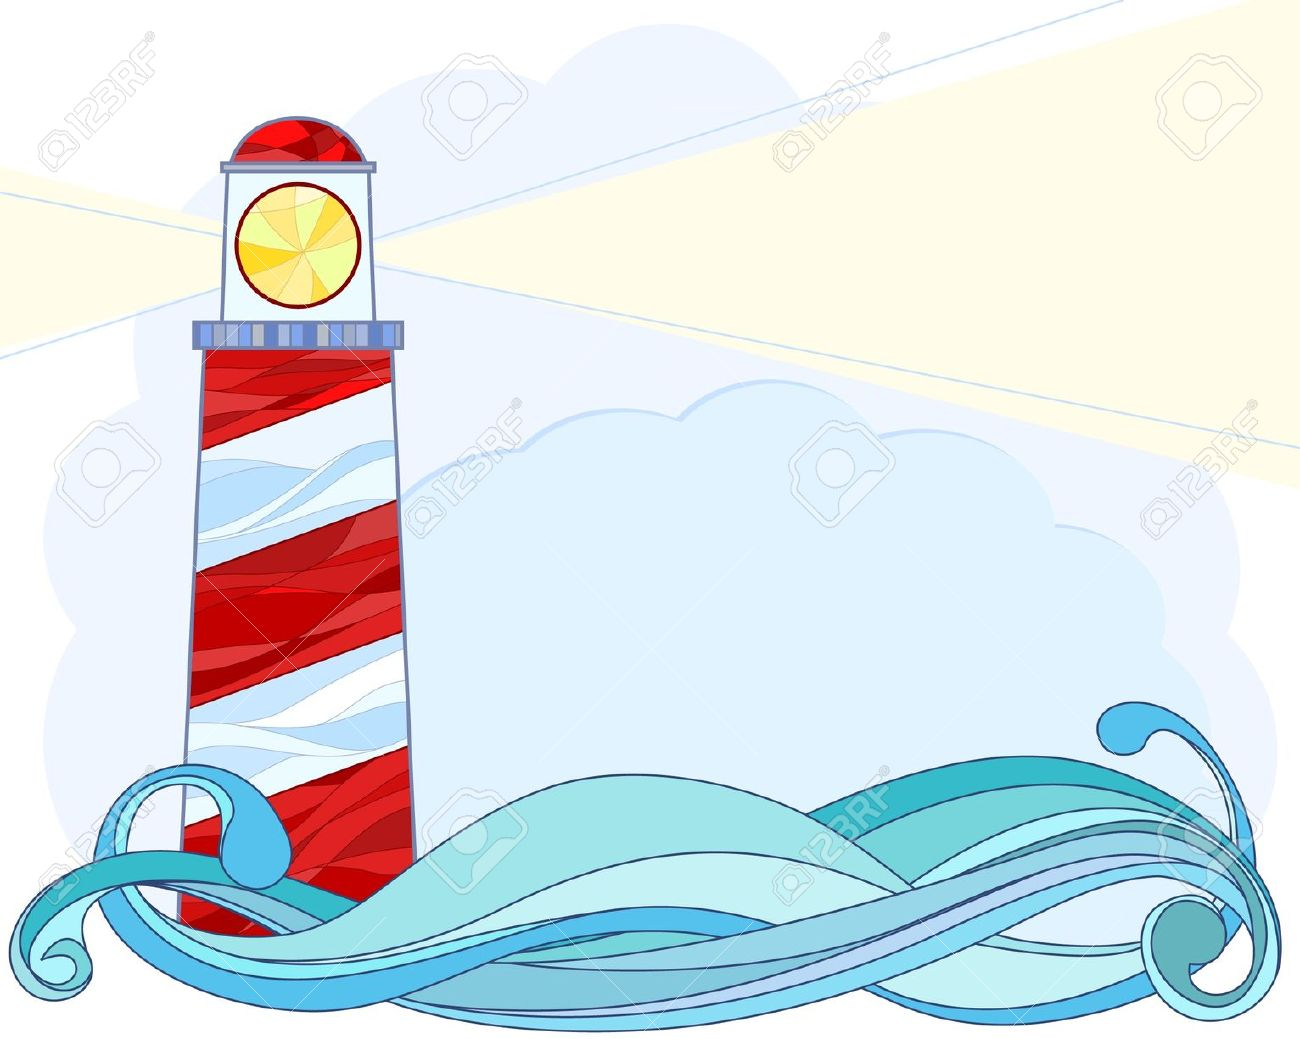 Stylised Vector Illustration Of A Lighthouse Royalty Free Cliparts.